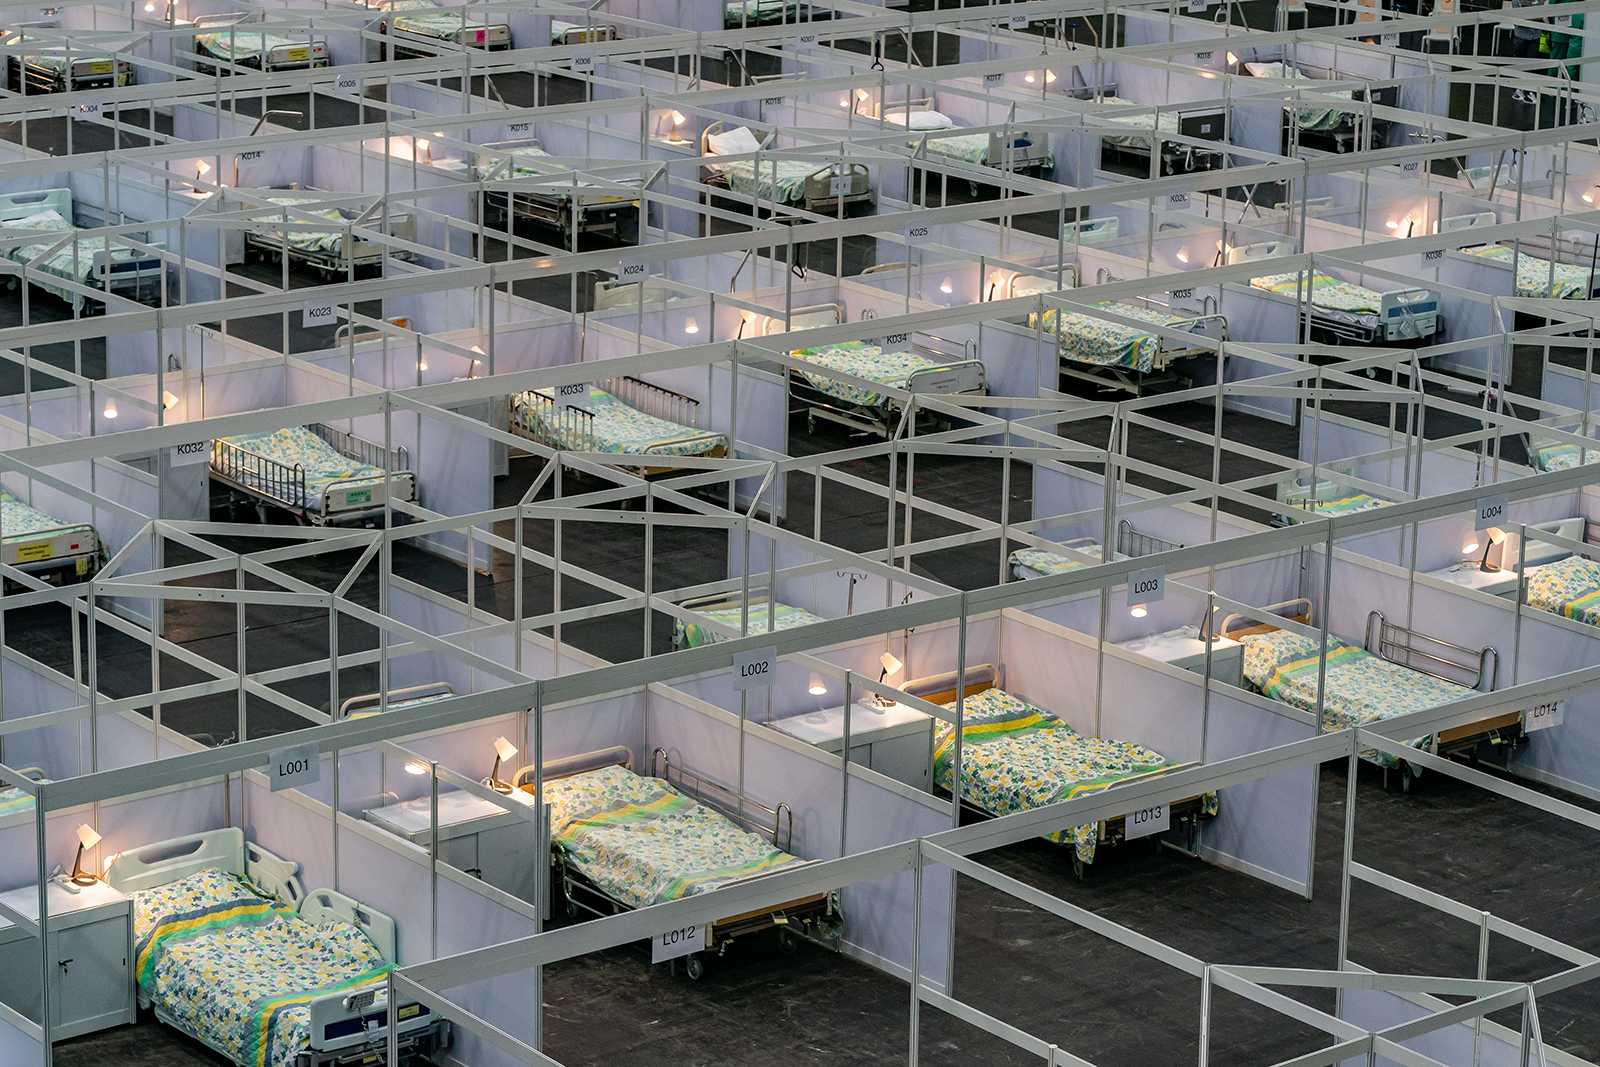 Beds are seen at a temporary field hospital set up at Asia World Expo in Hong Kong, China on August 1. AsiaWorld-Expo has been converted into a makeshift hospital that can take up to 500 patients.